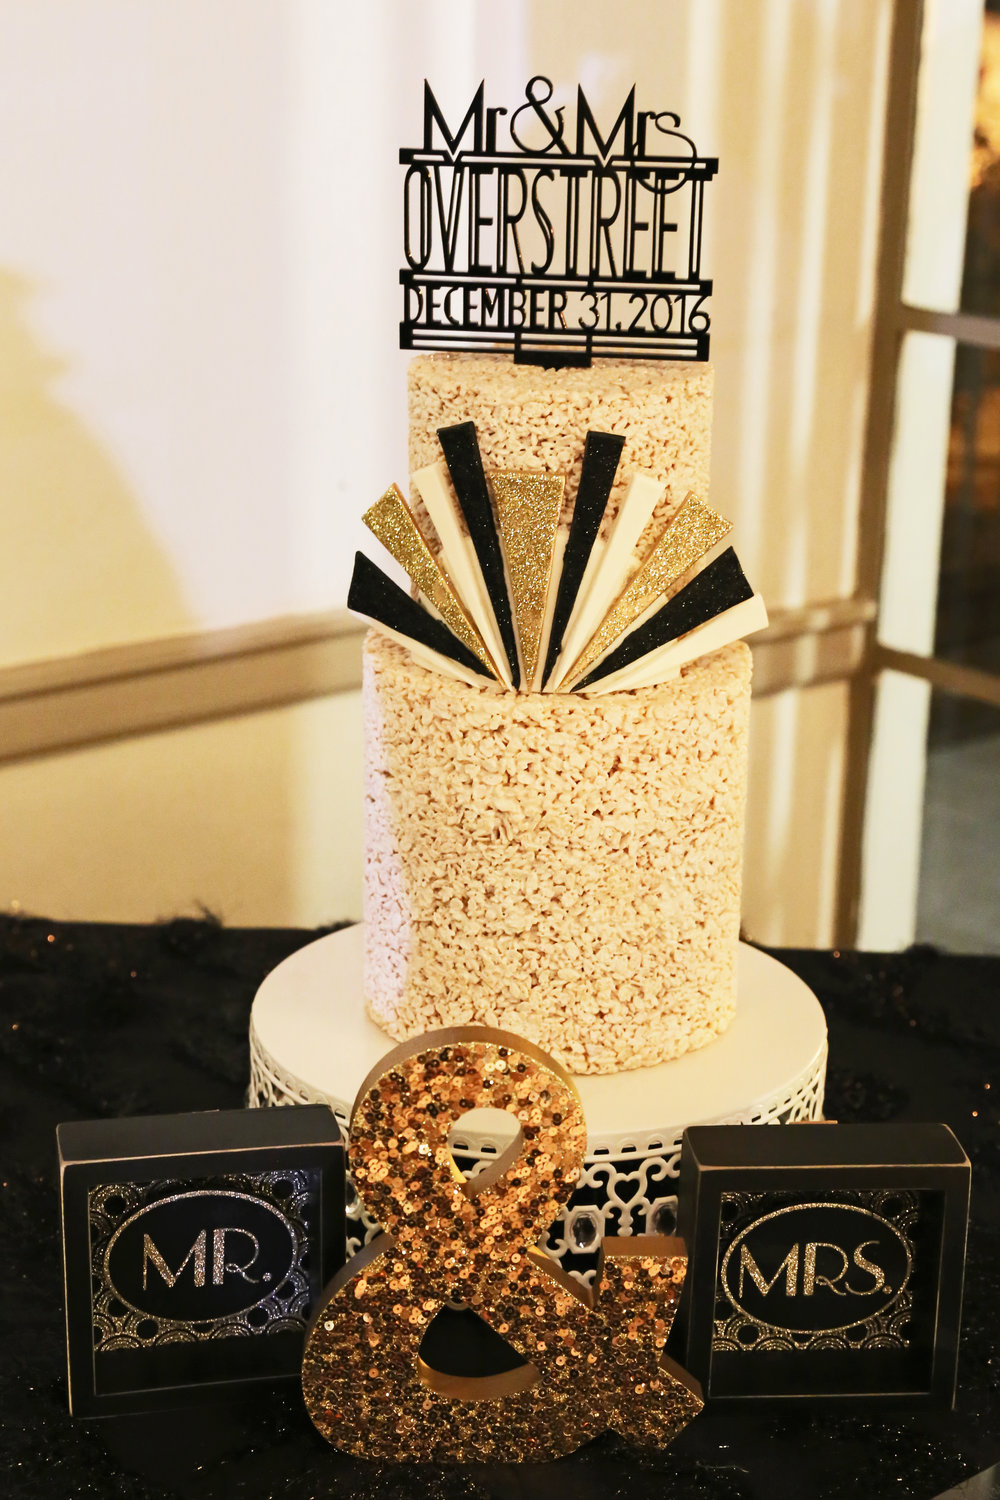 The unique wedding cake was created with crisp rice cereal and featured an art-deco design.